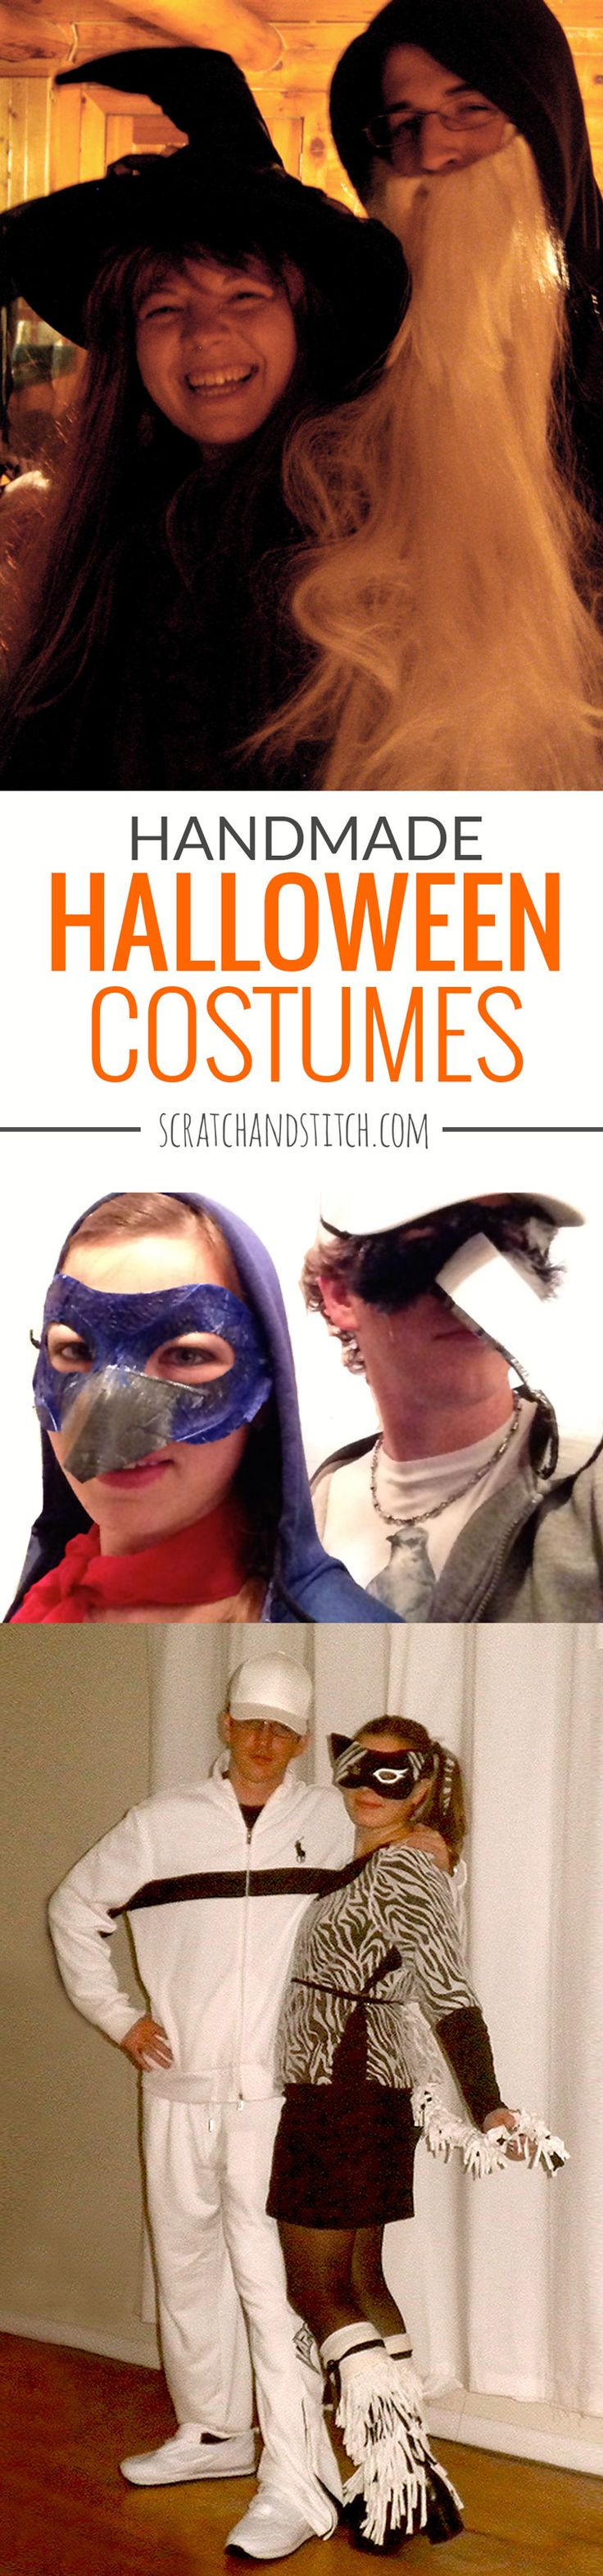 Handmade Halloween Costumes for couples. by scratchandstitch.com